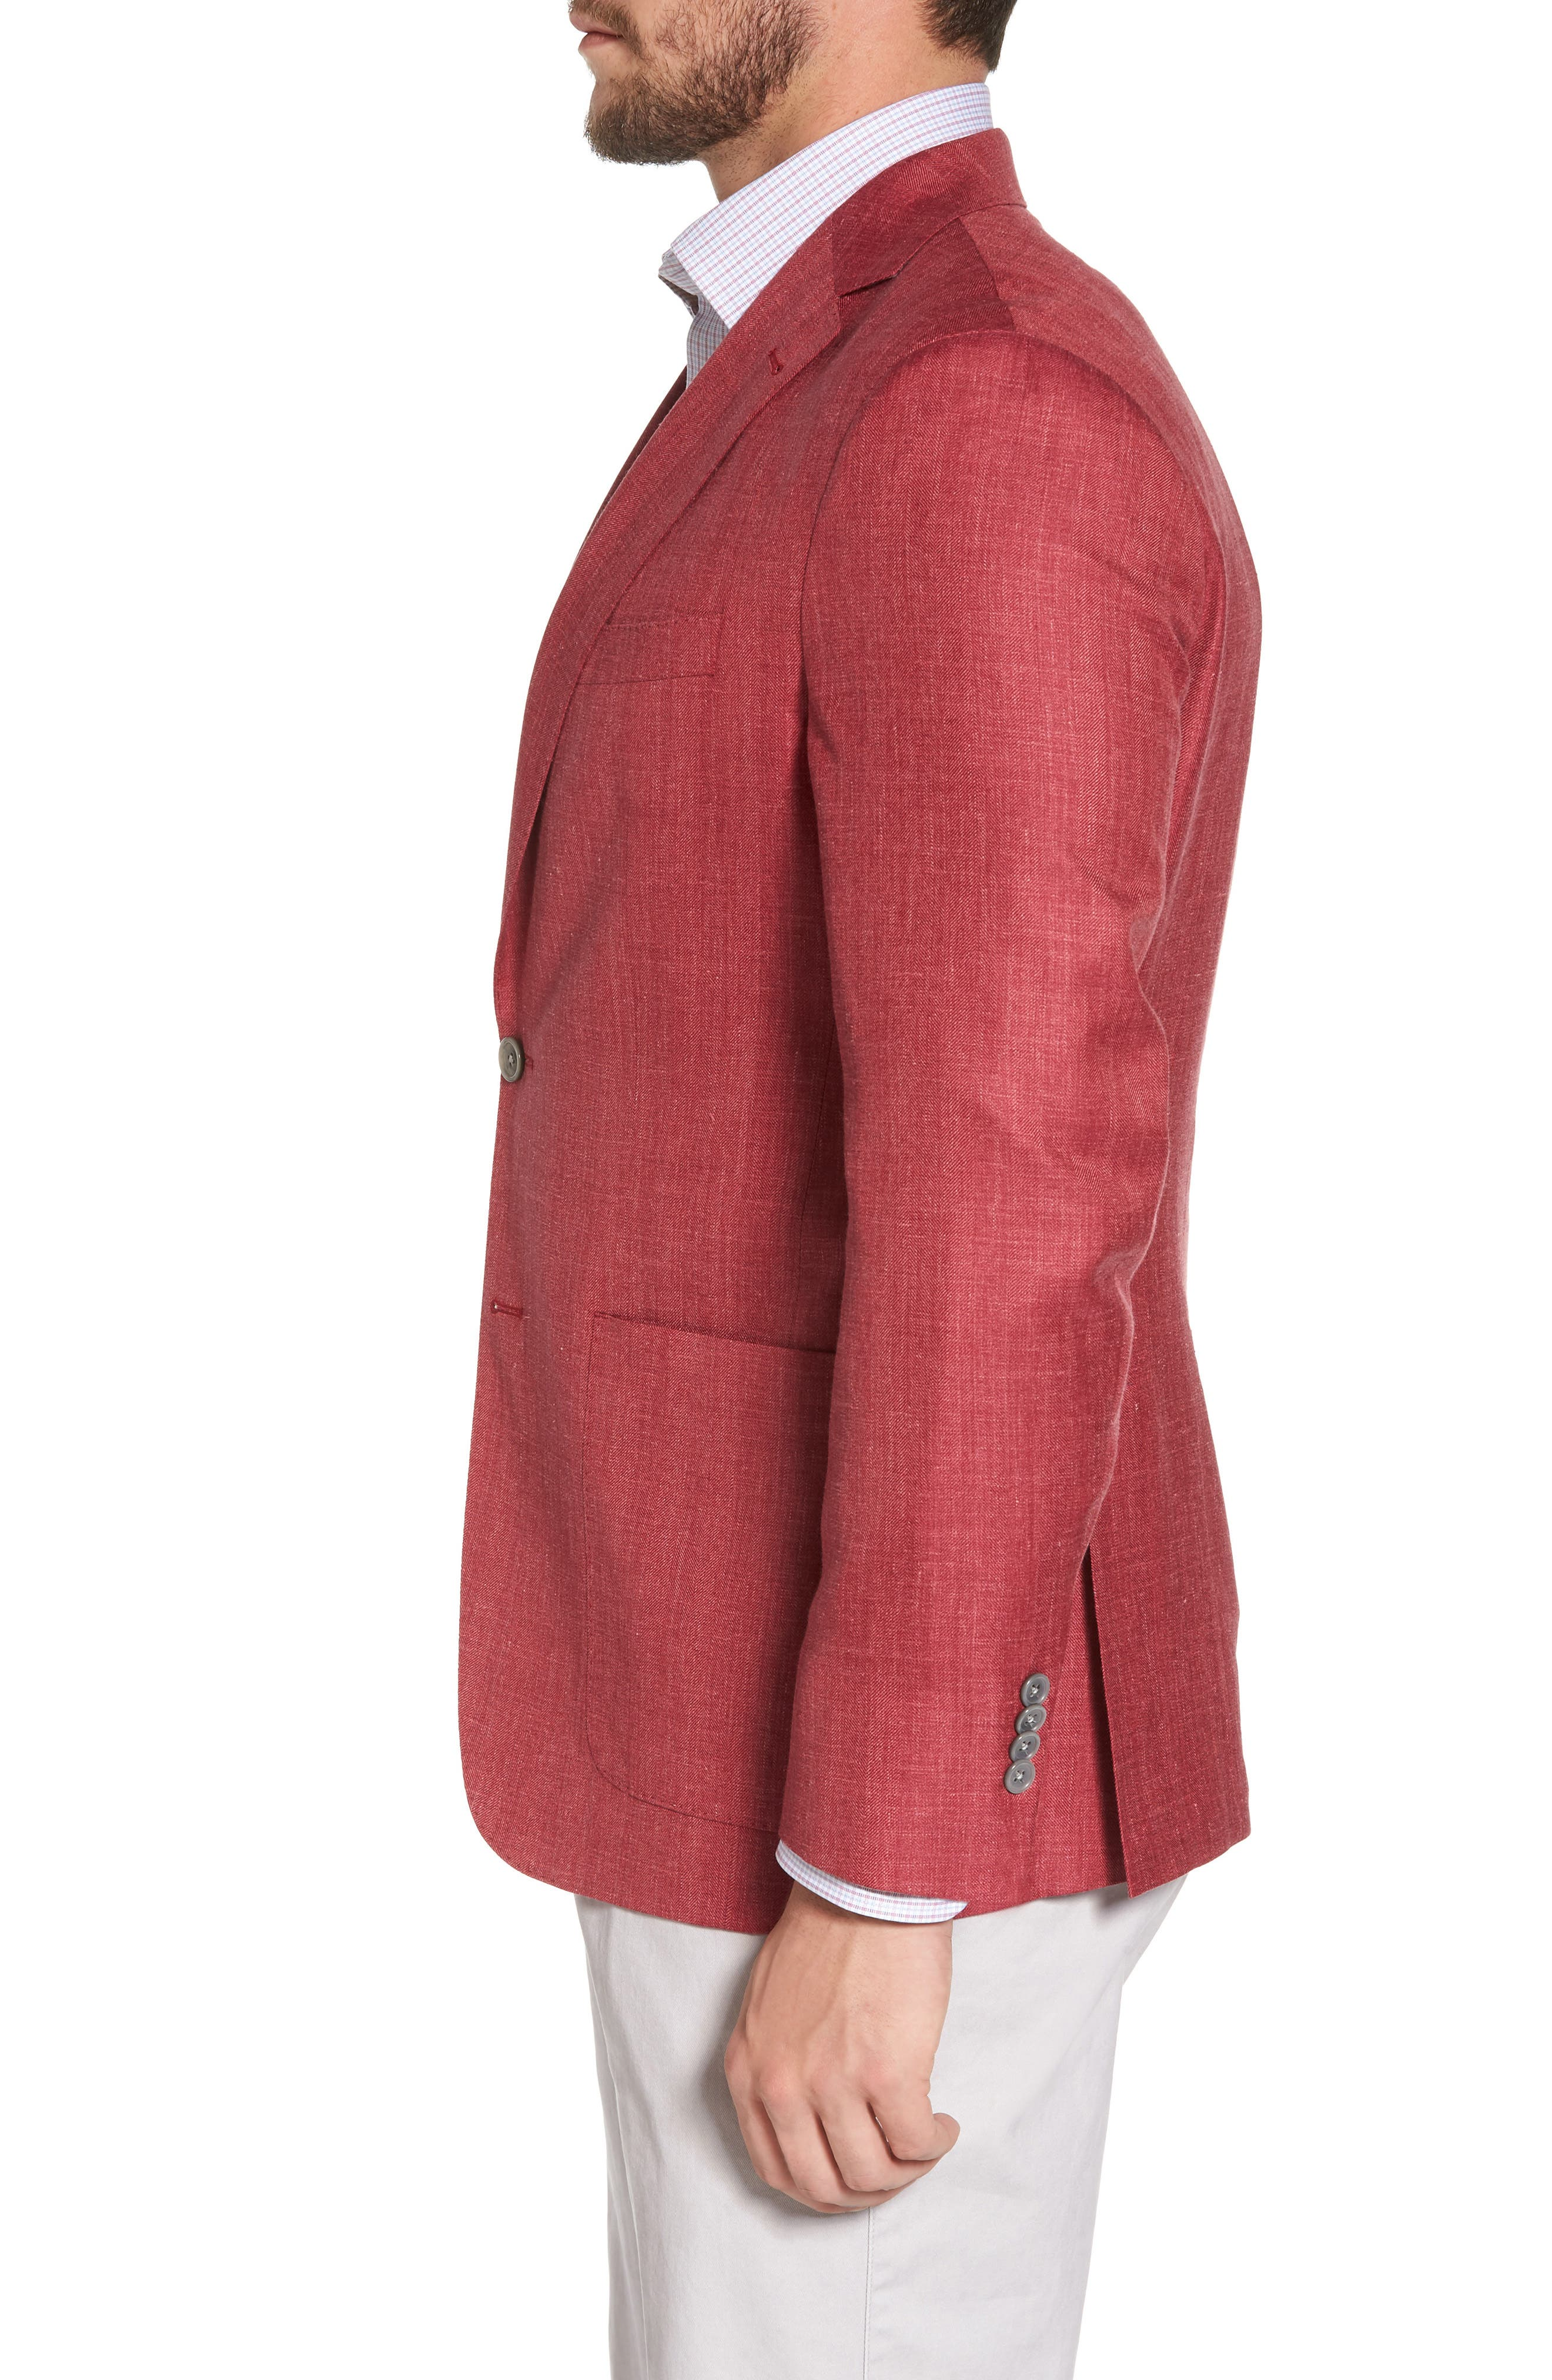 Aiden Classic Fit Wool Blend Blazer,                             Alternate thumbnail 3, color,                             Red